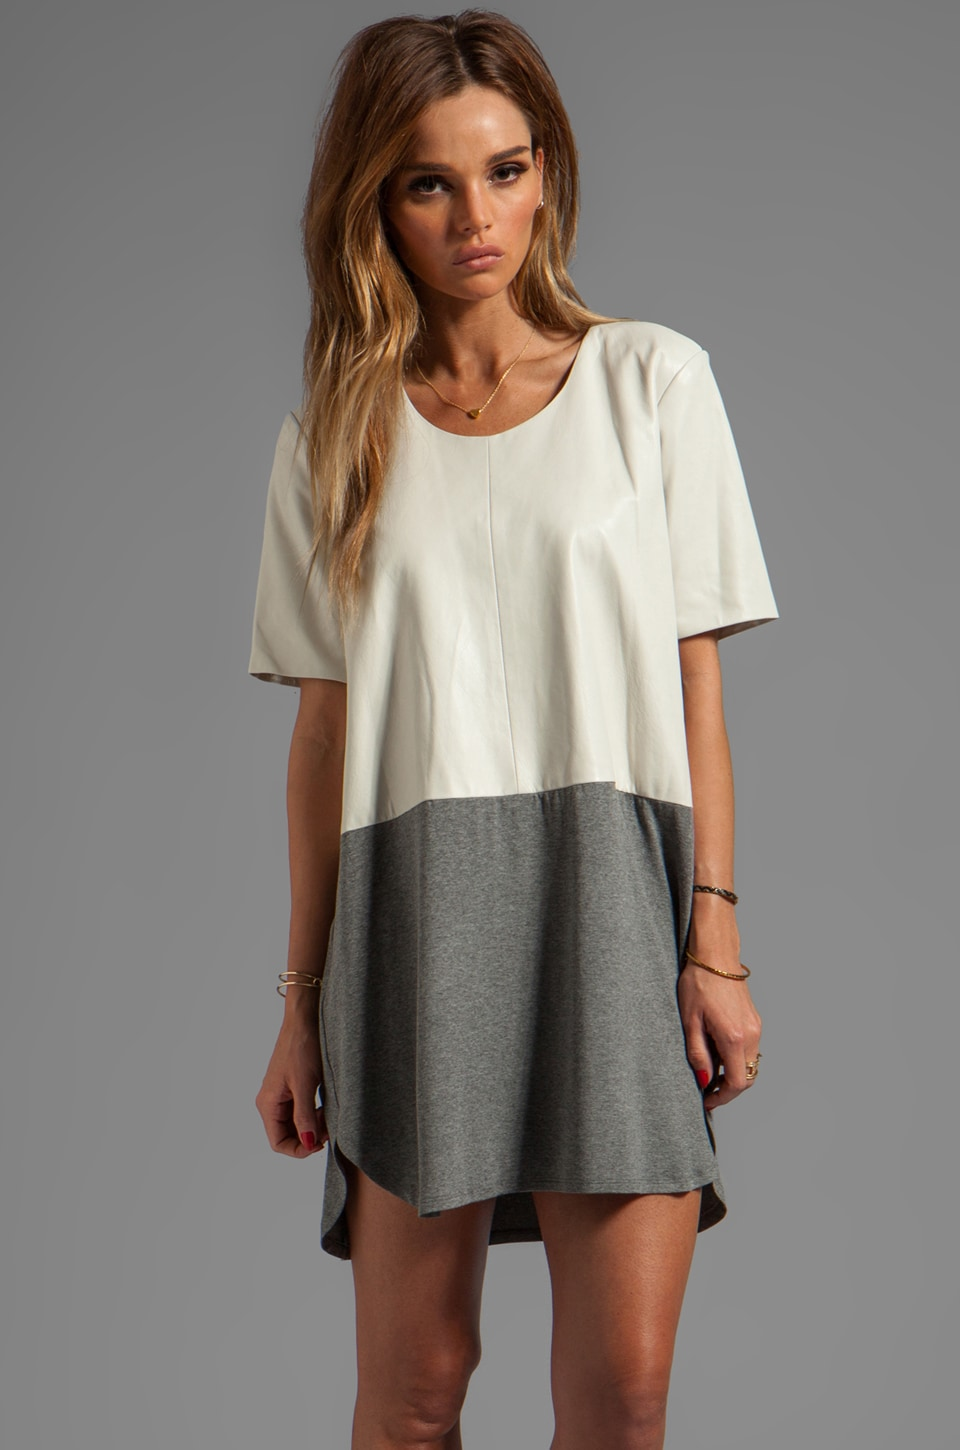 Michelle Mason Leather Front Tee Dress in Grey/Bone